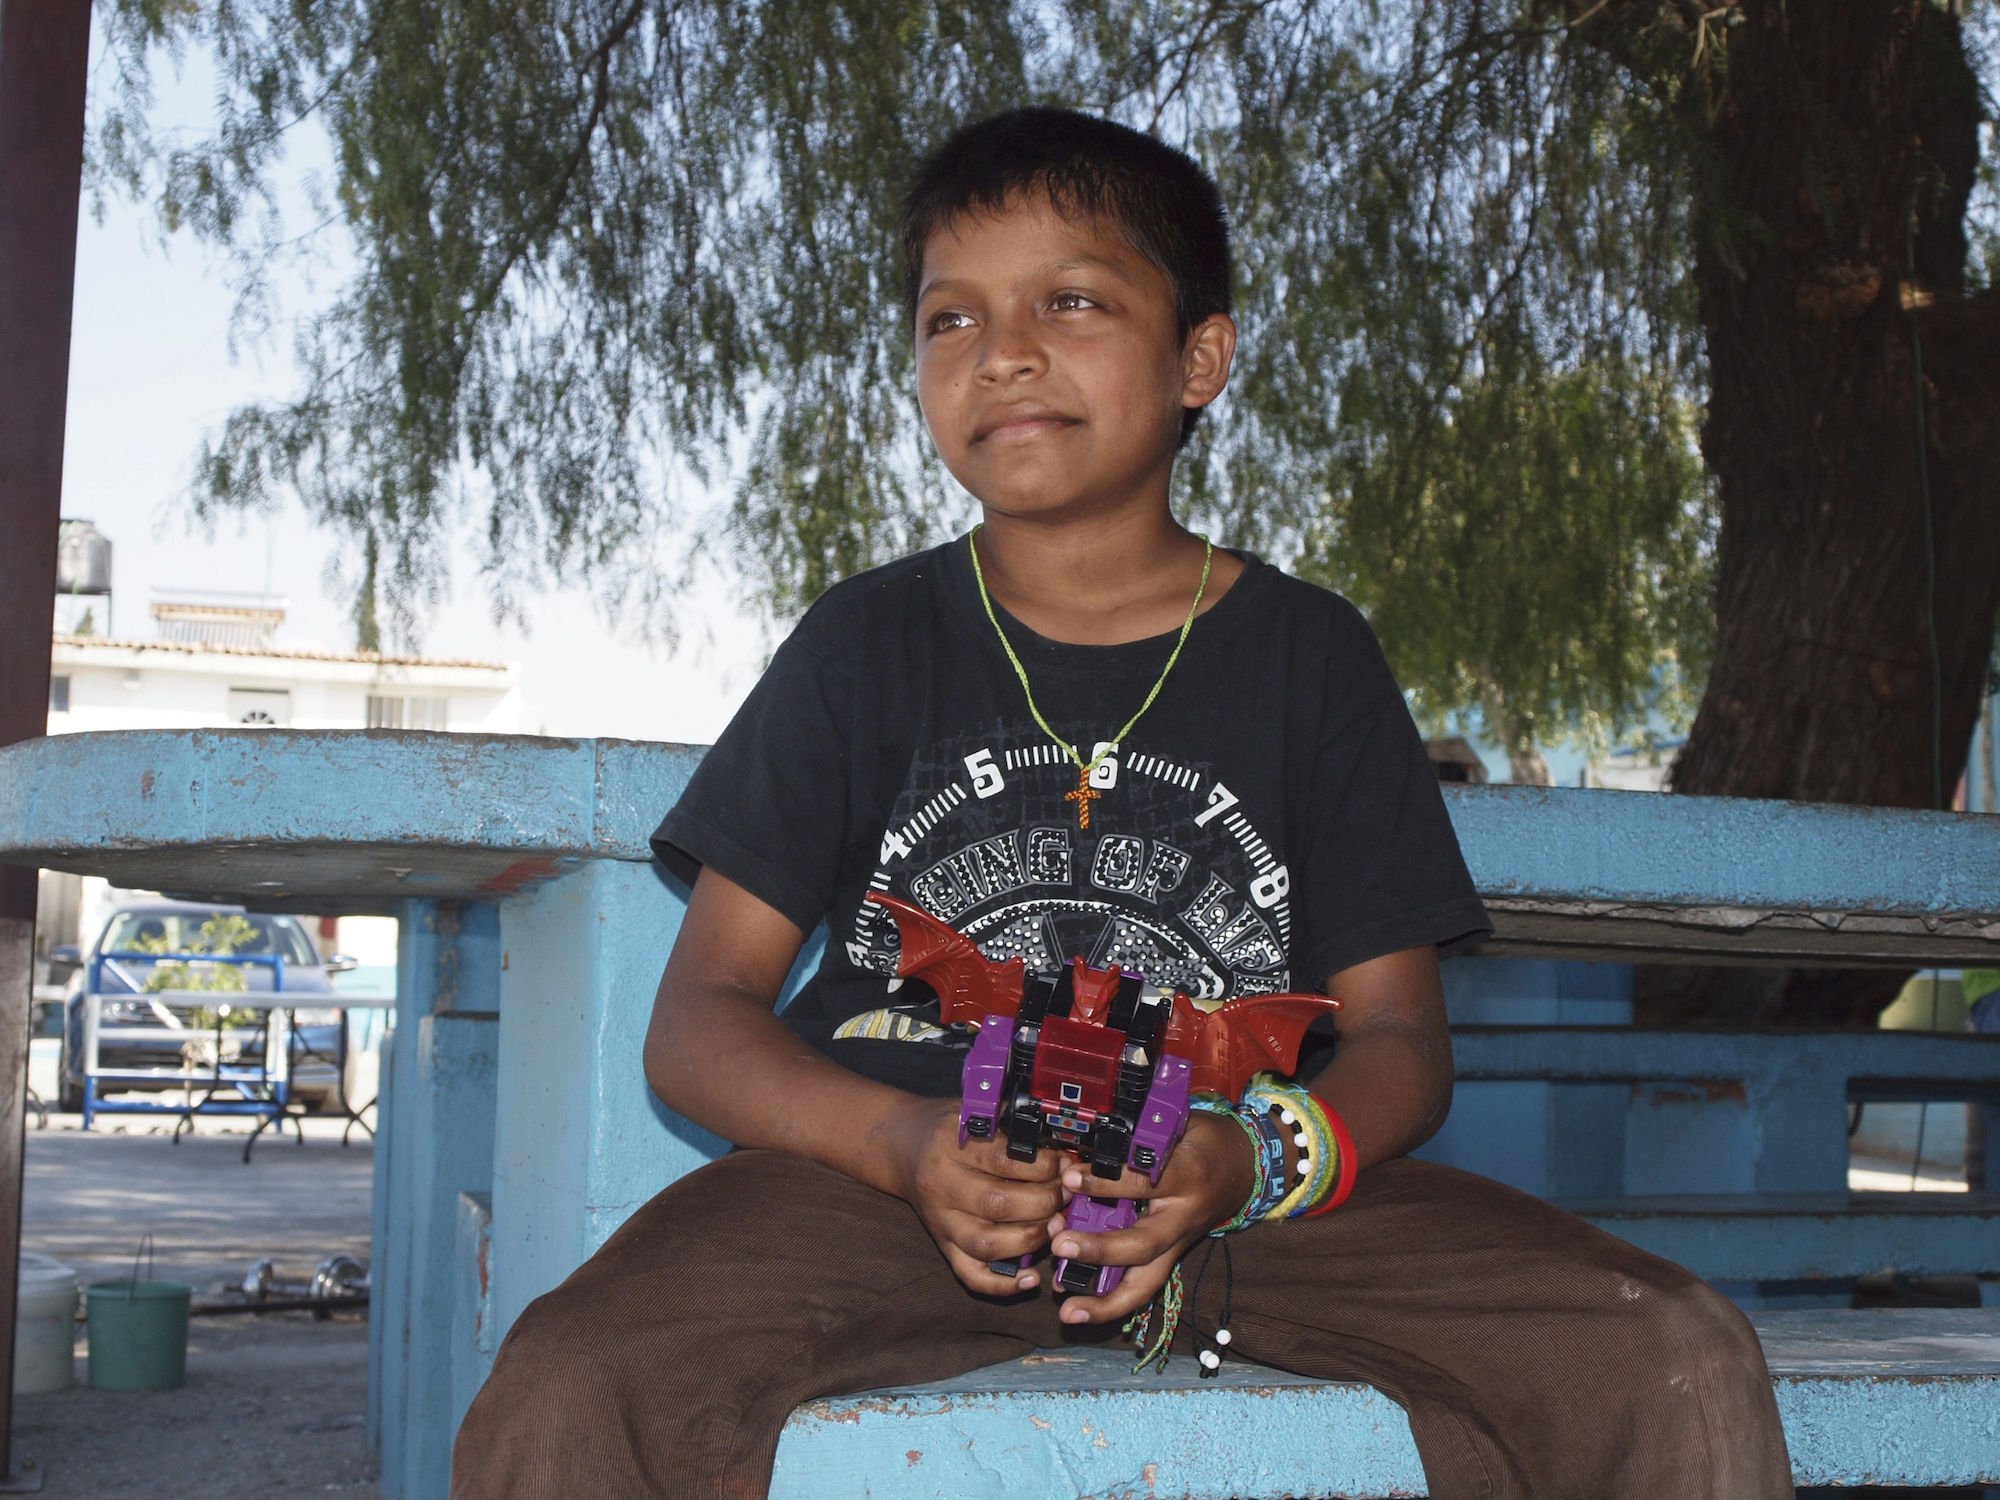 Eleven-year-old Allan's older brothers were slain by drug gangs in Guatemala. An influx of child migrants at the border last year has resulted in record numbers of minors being detained in Mexico.